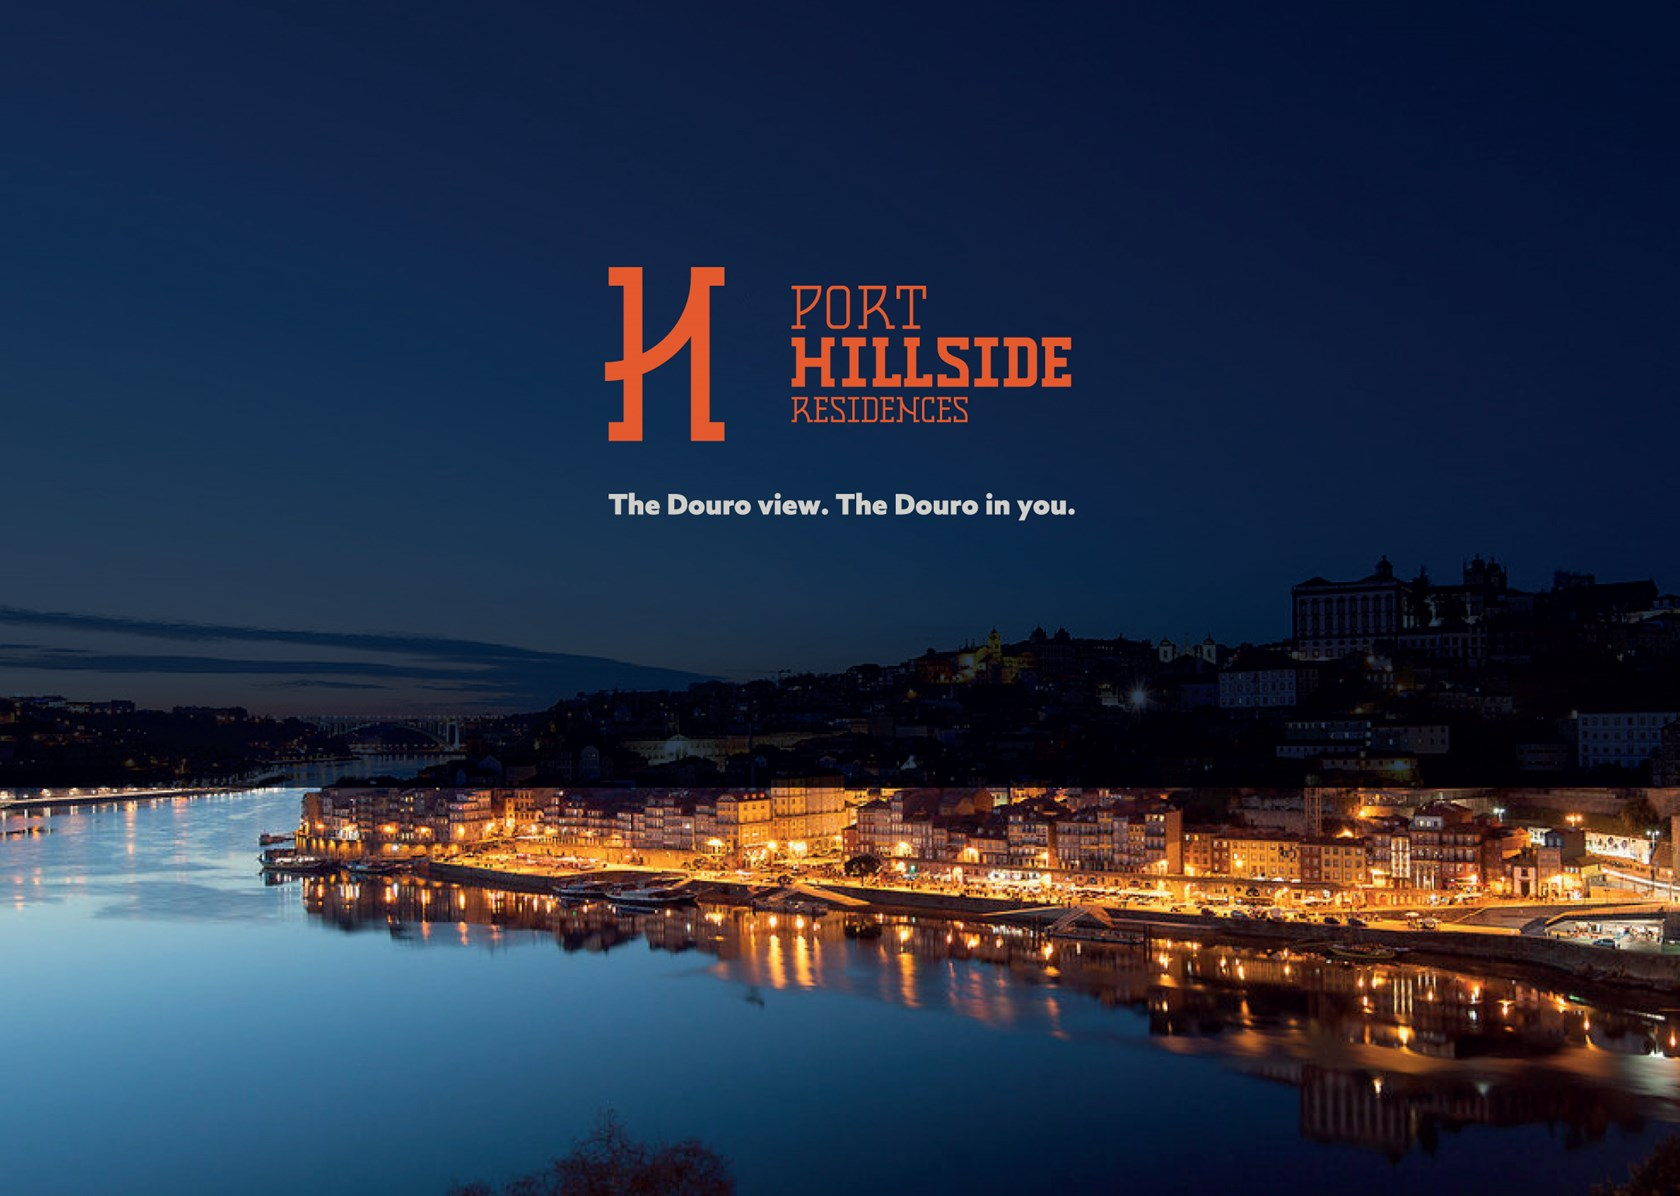 Port Hillside — Branding with a view